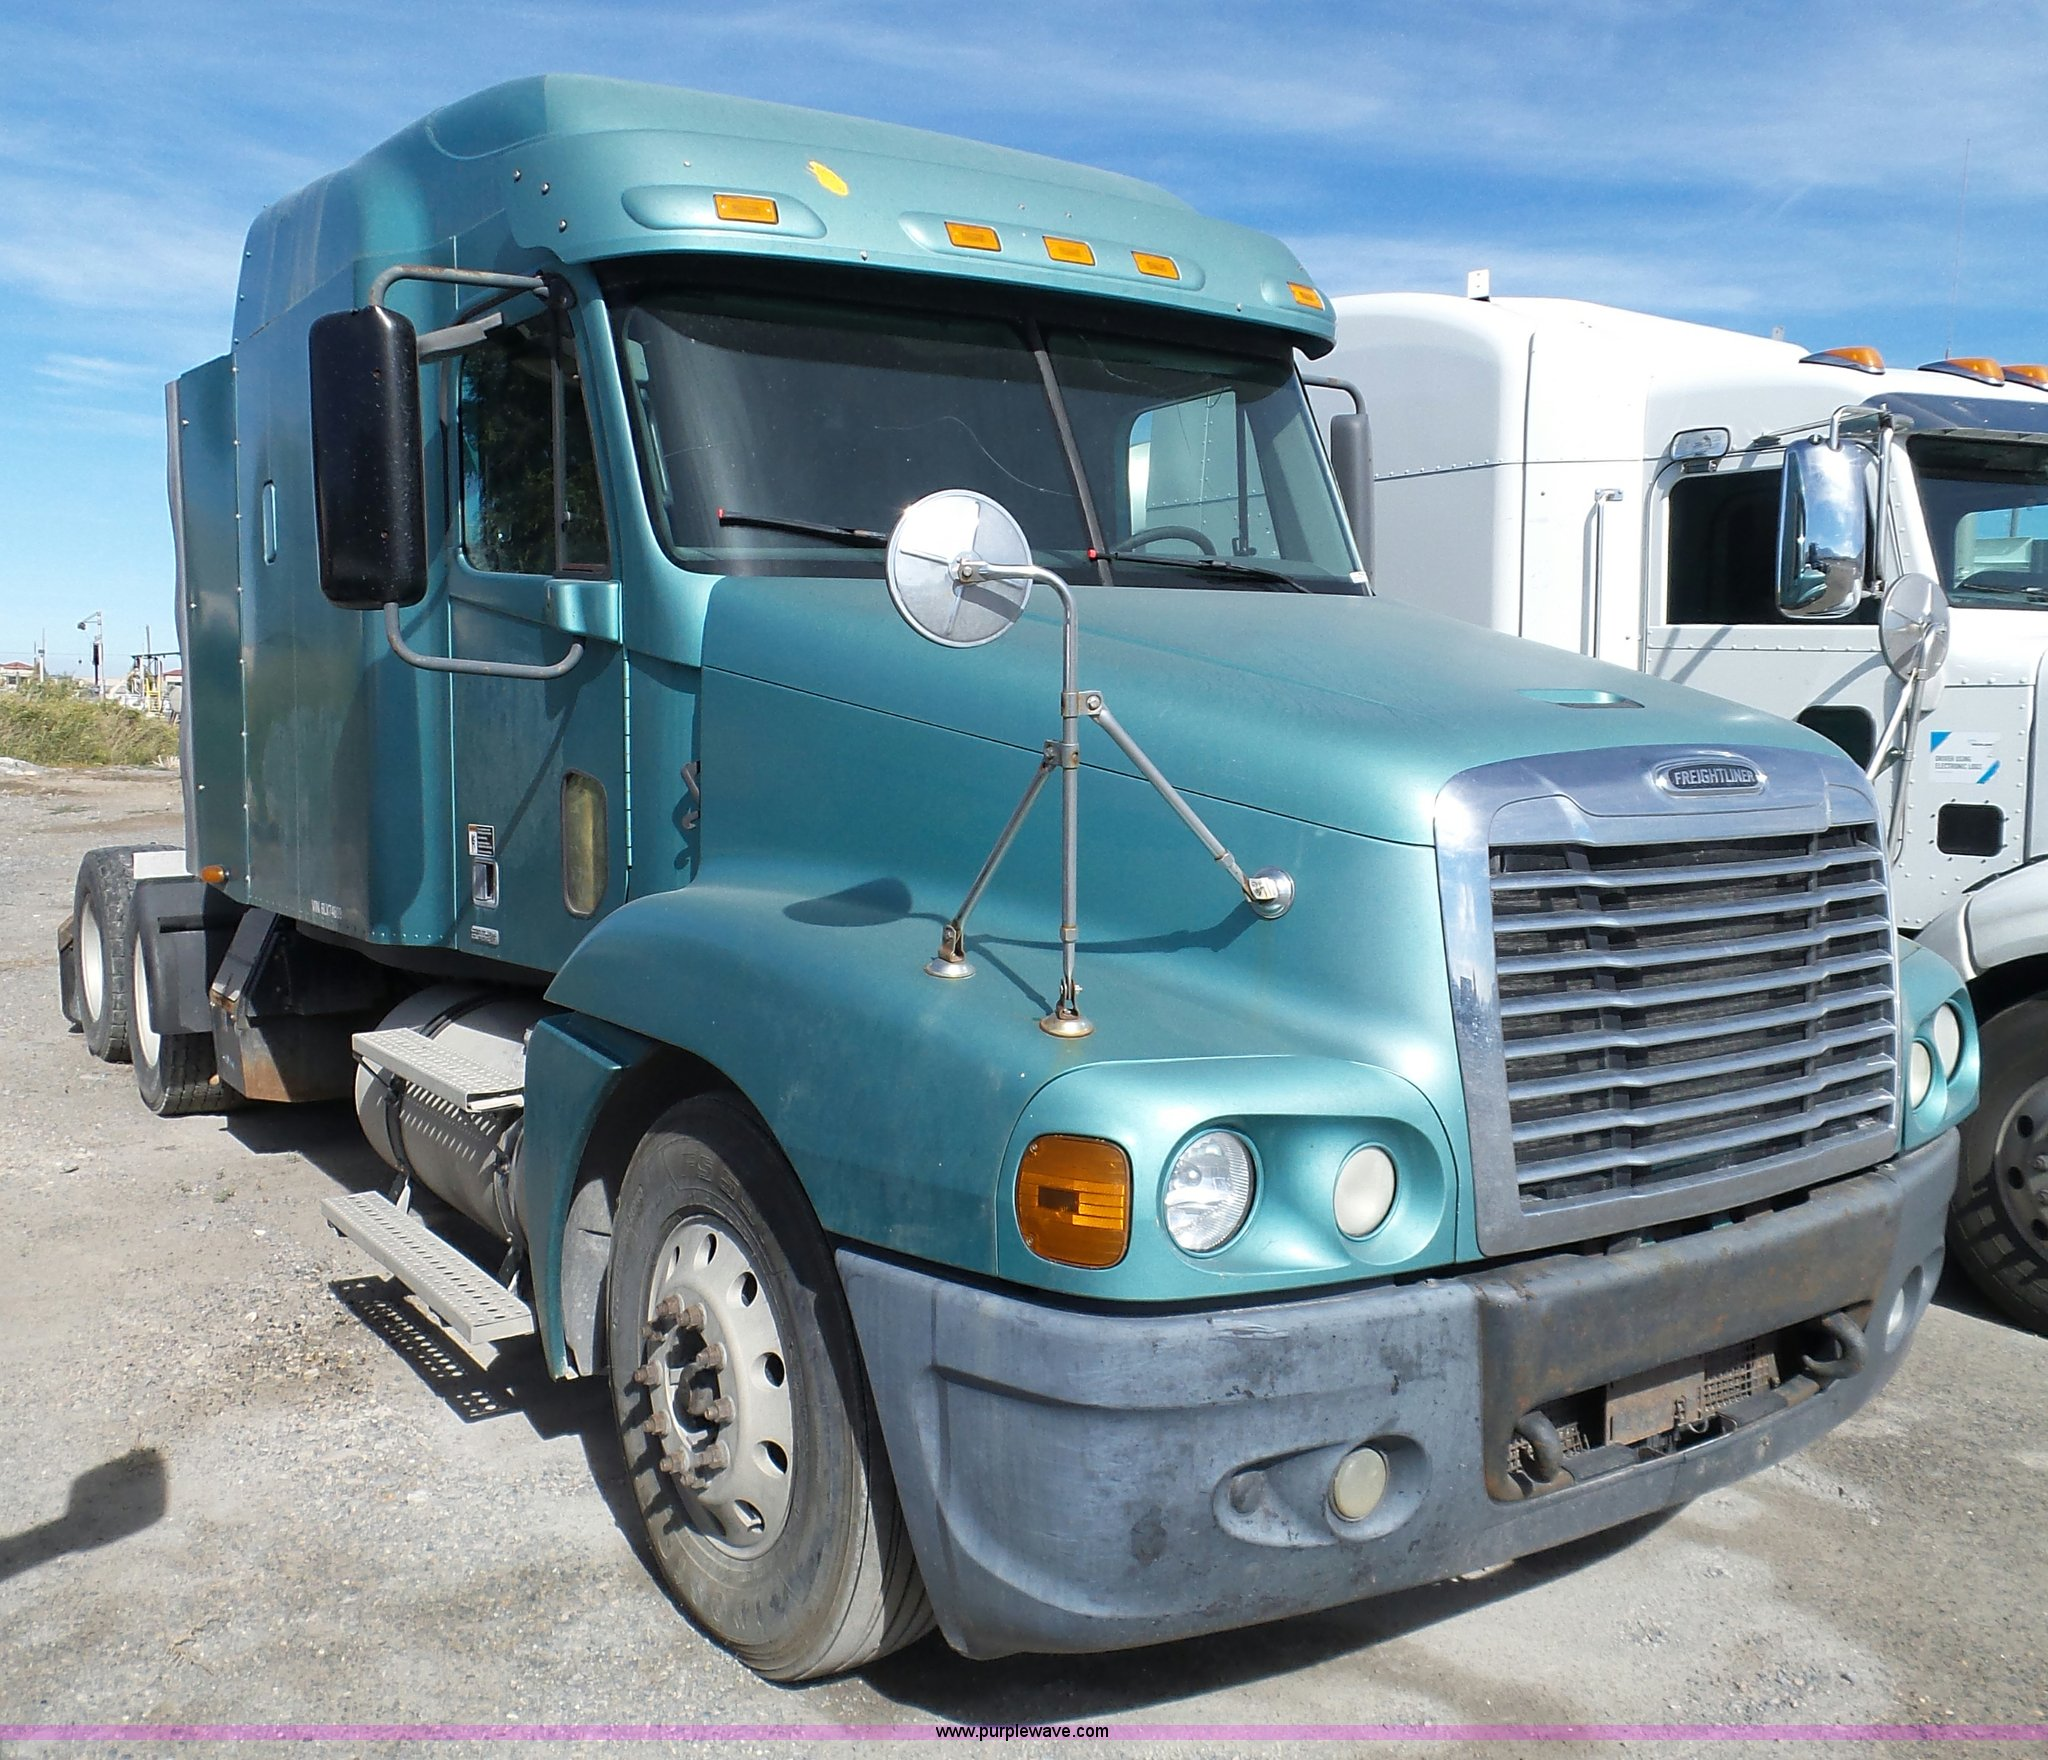 2006 Freightliner Century Fuel Filter Electrical Wiring Diagram 33976 Class St120 Semi Truck Item Bn94 Wrenches